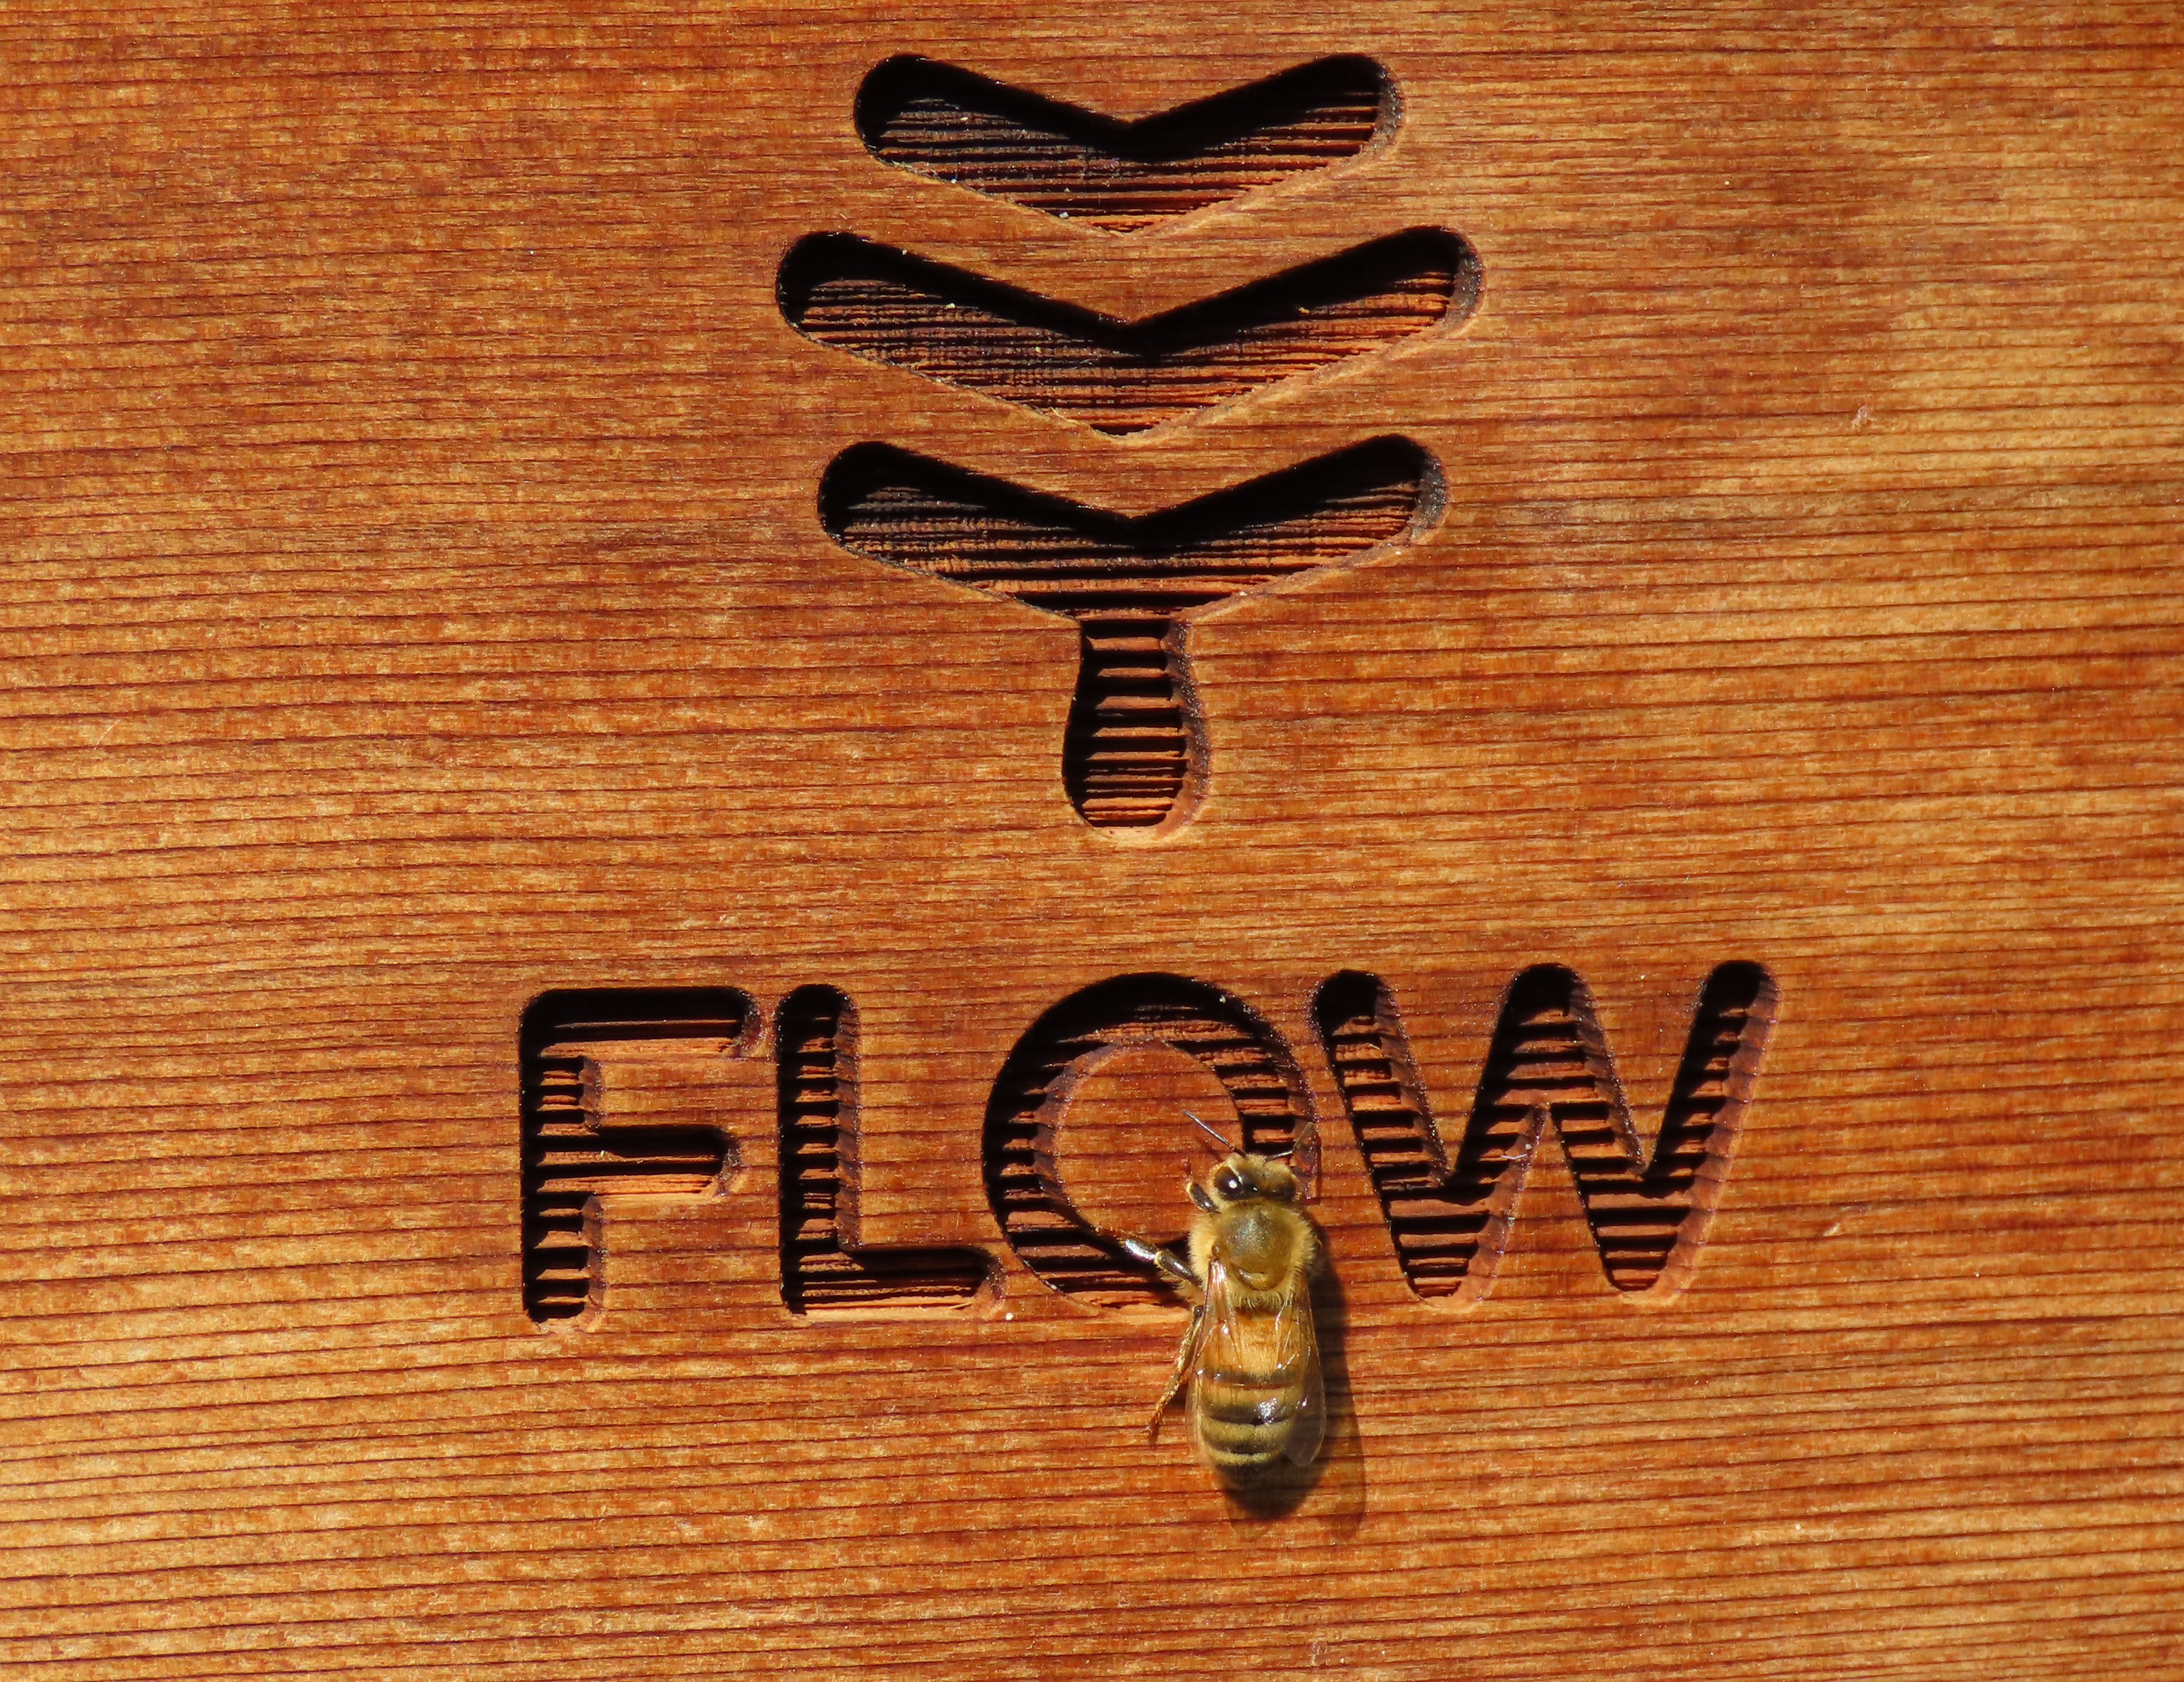 Flow Bee product